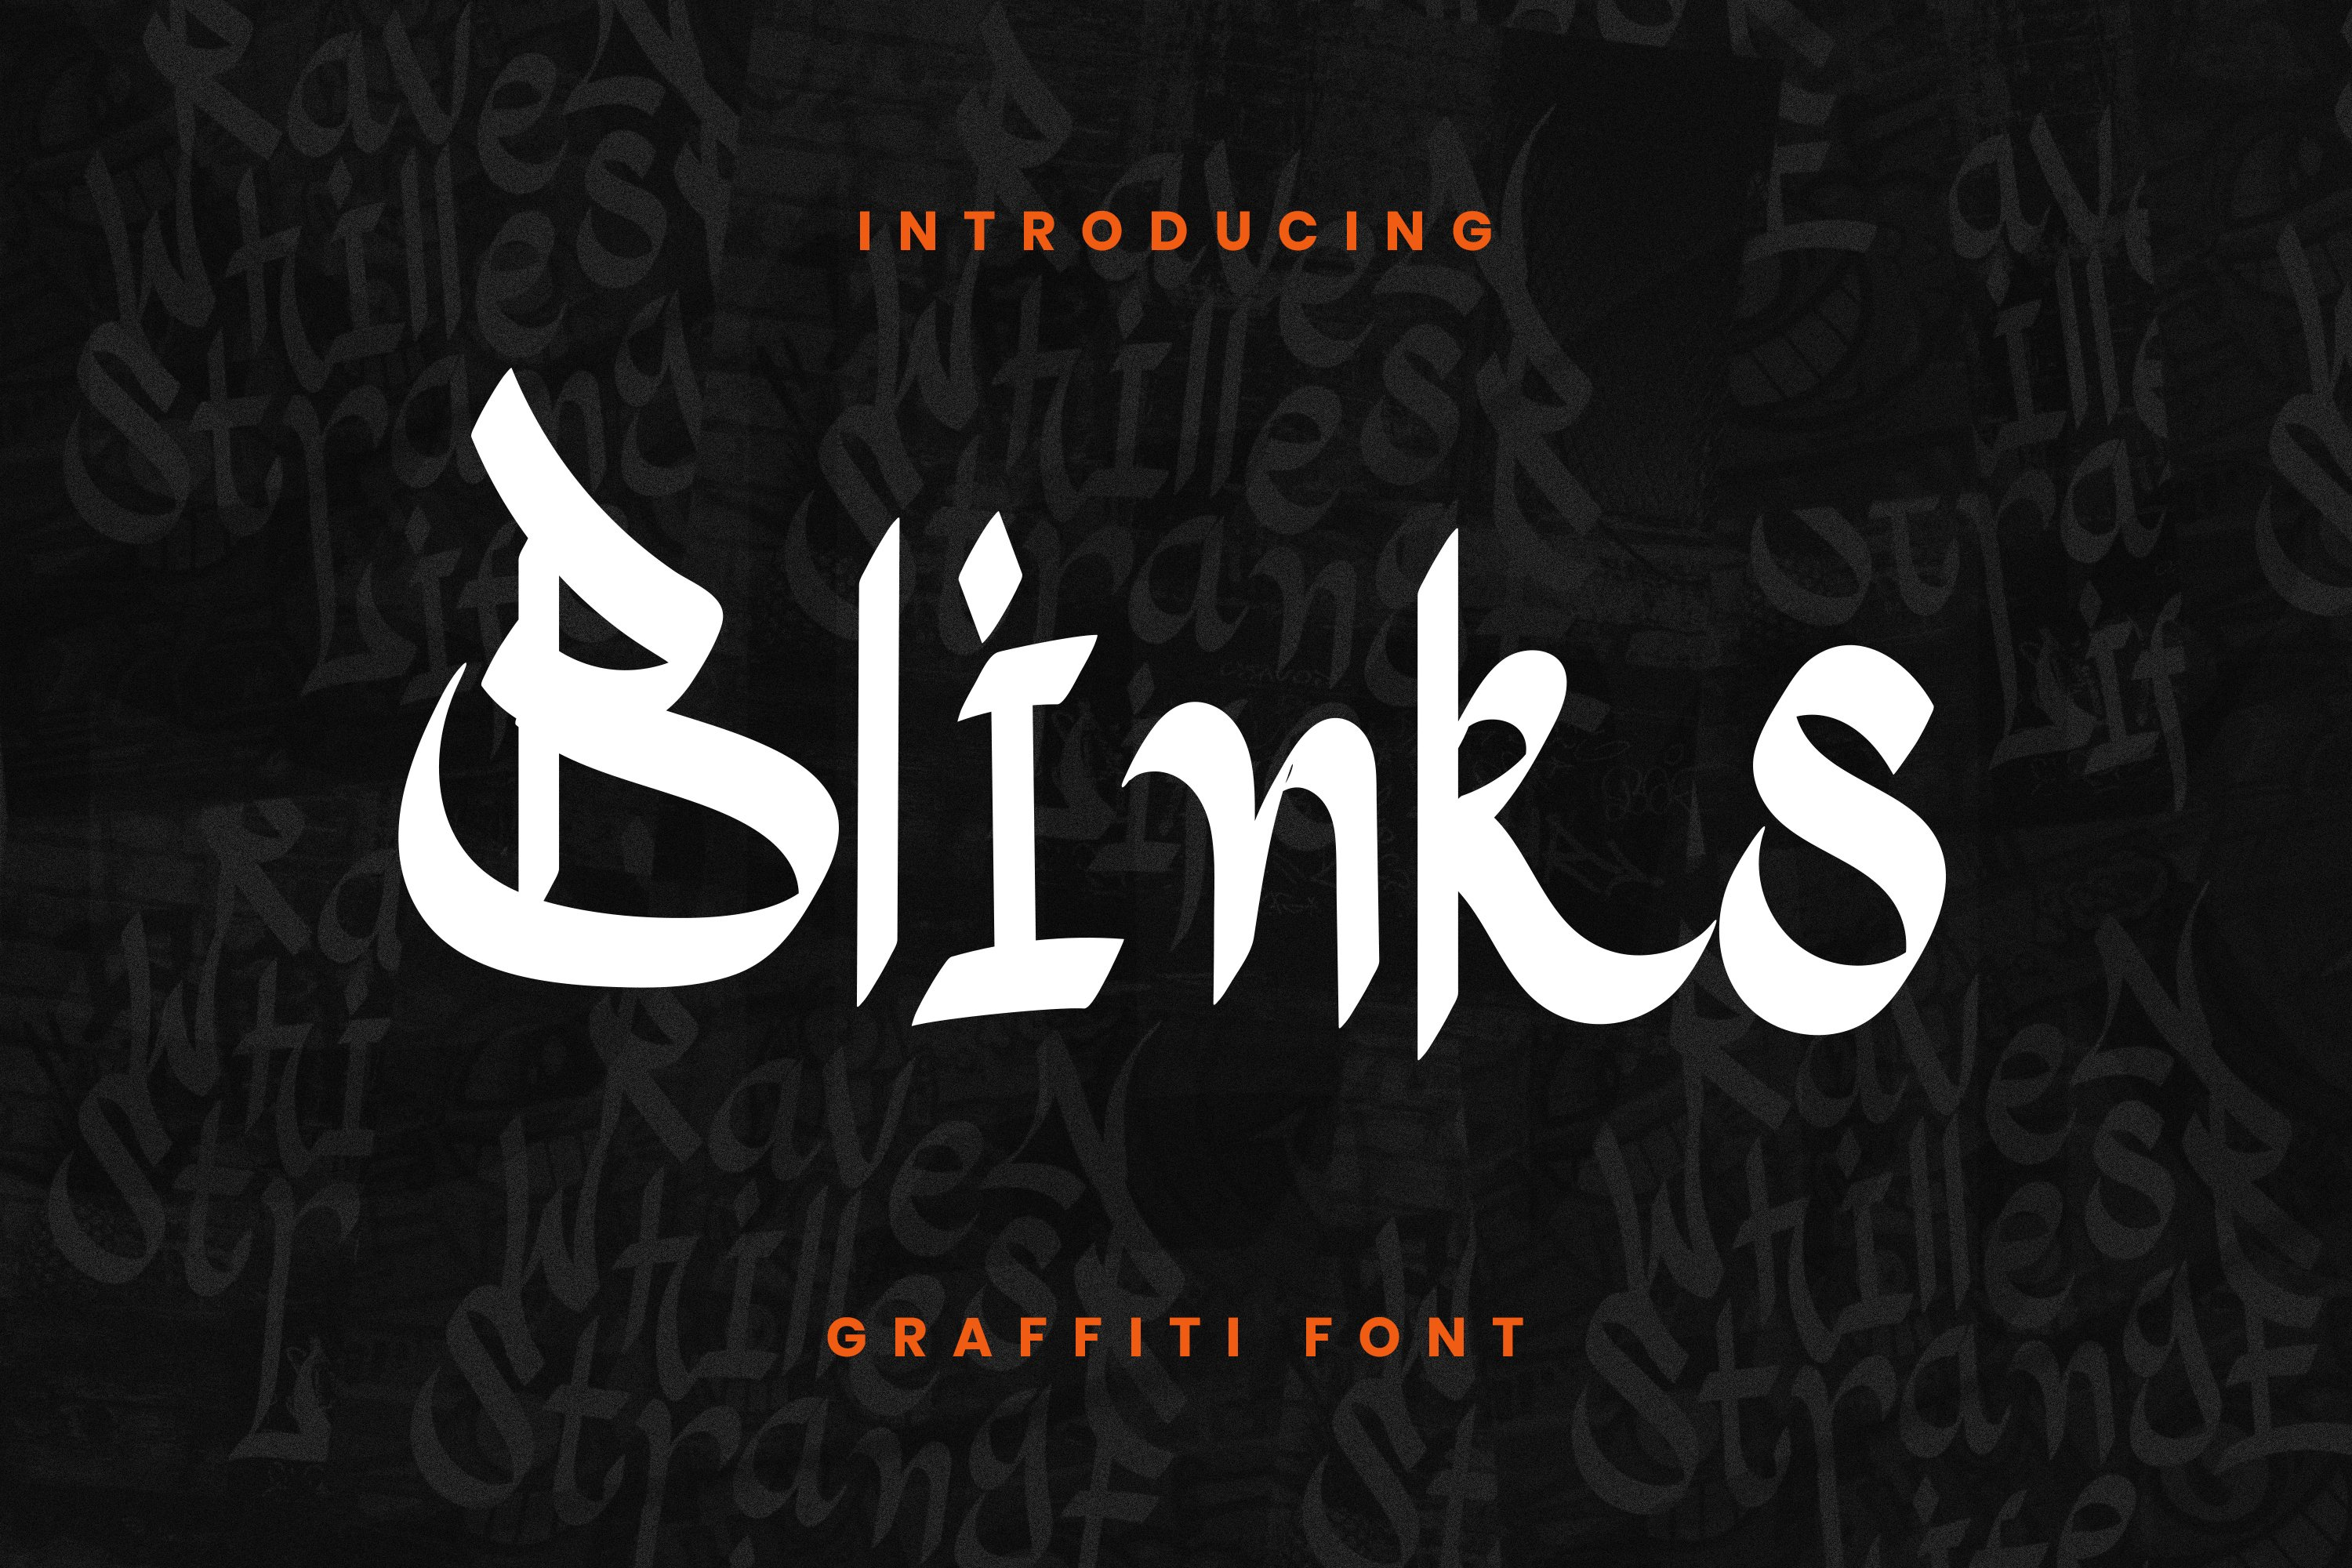 Blinks Font example image 1